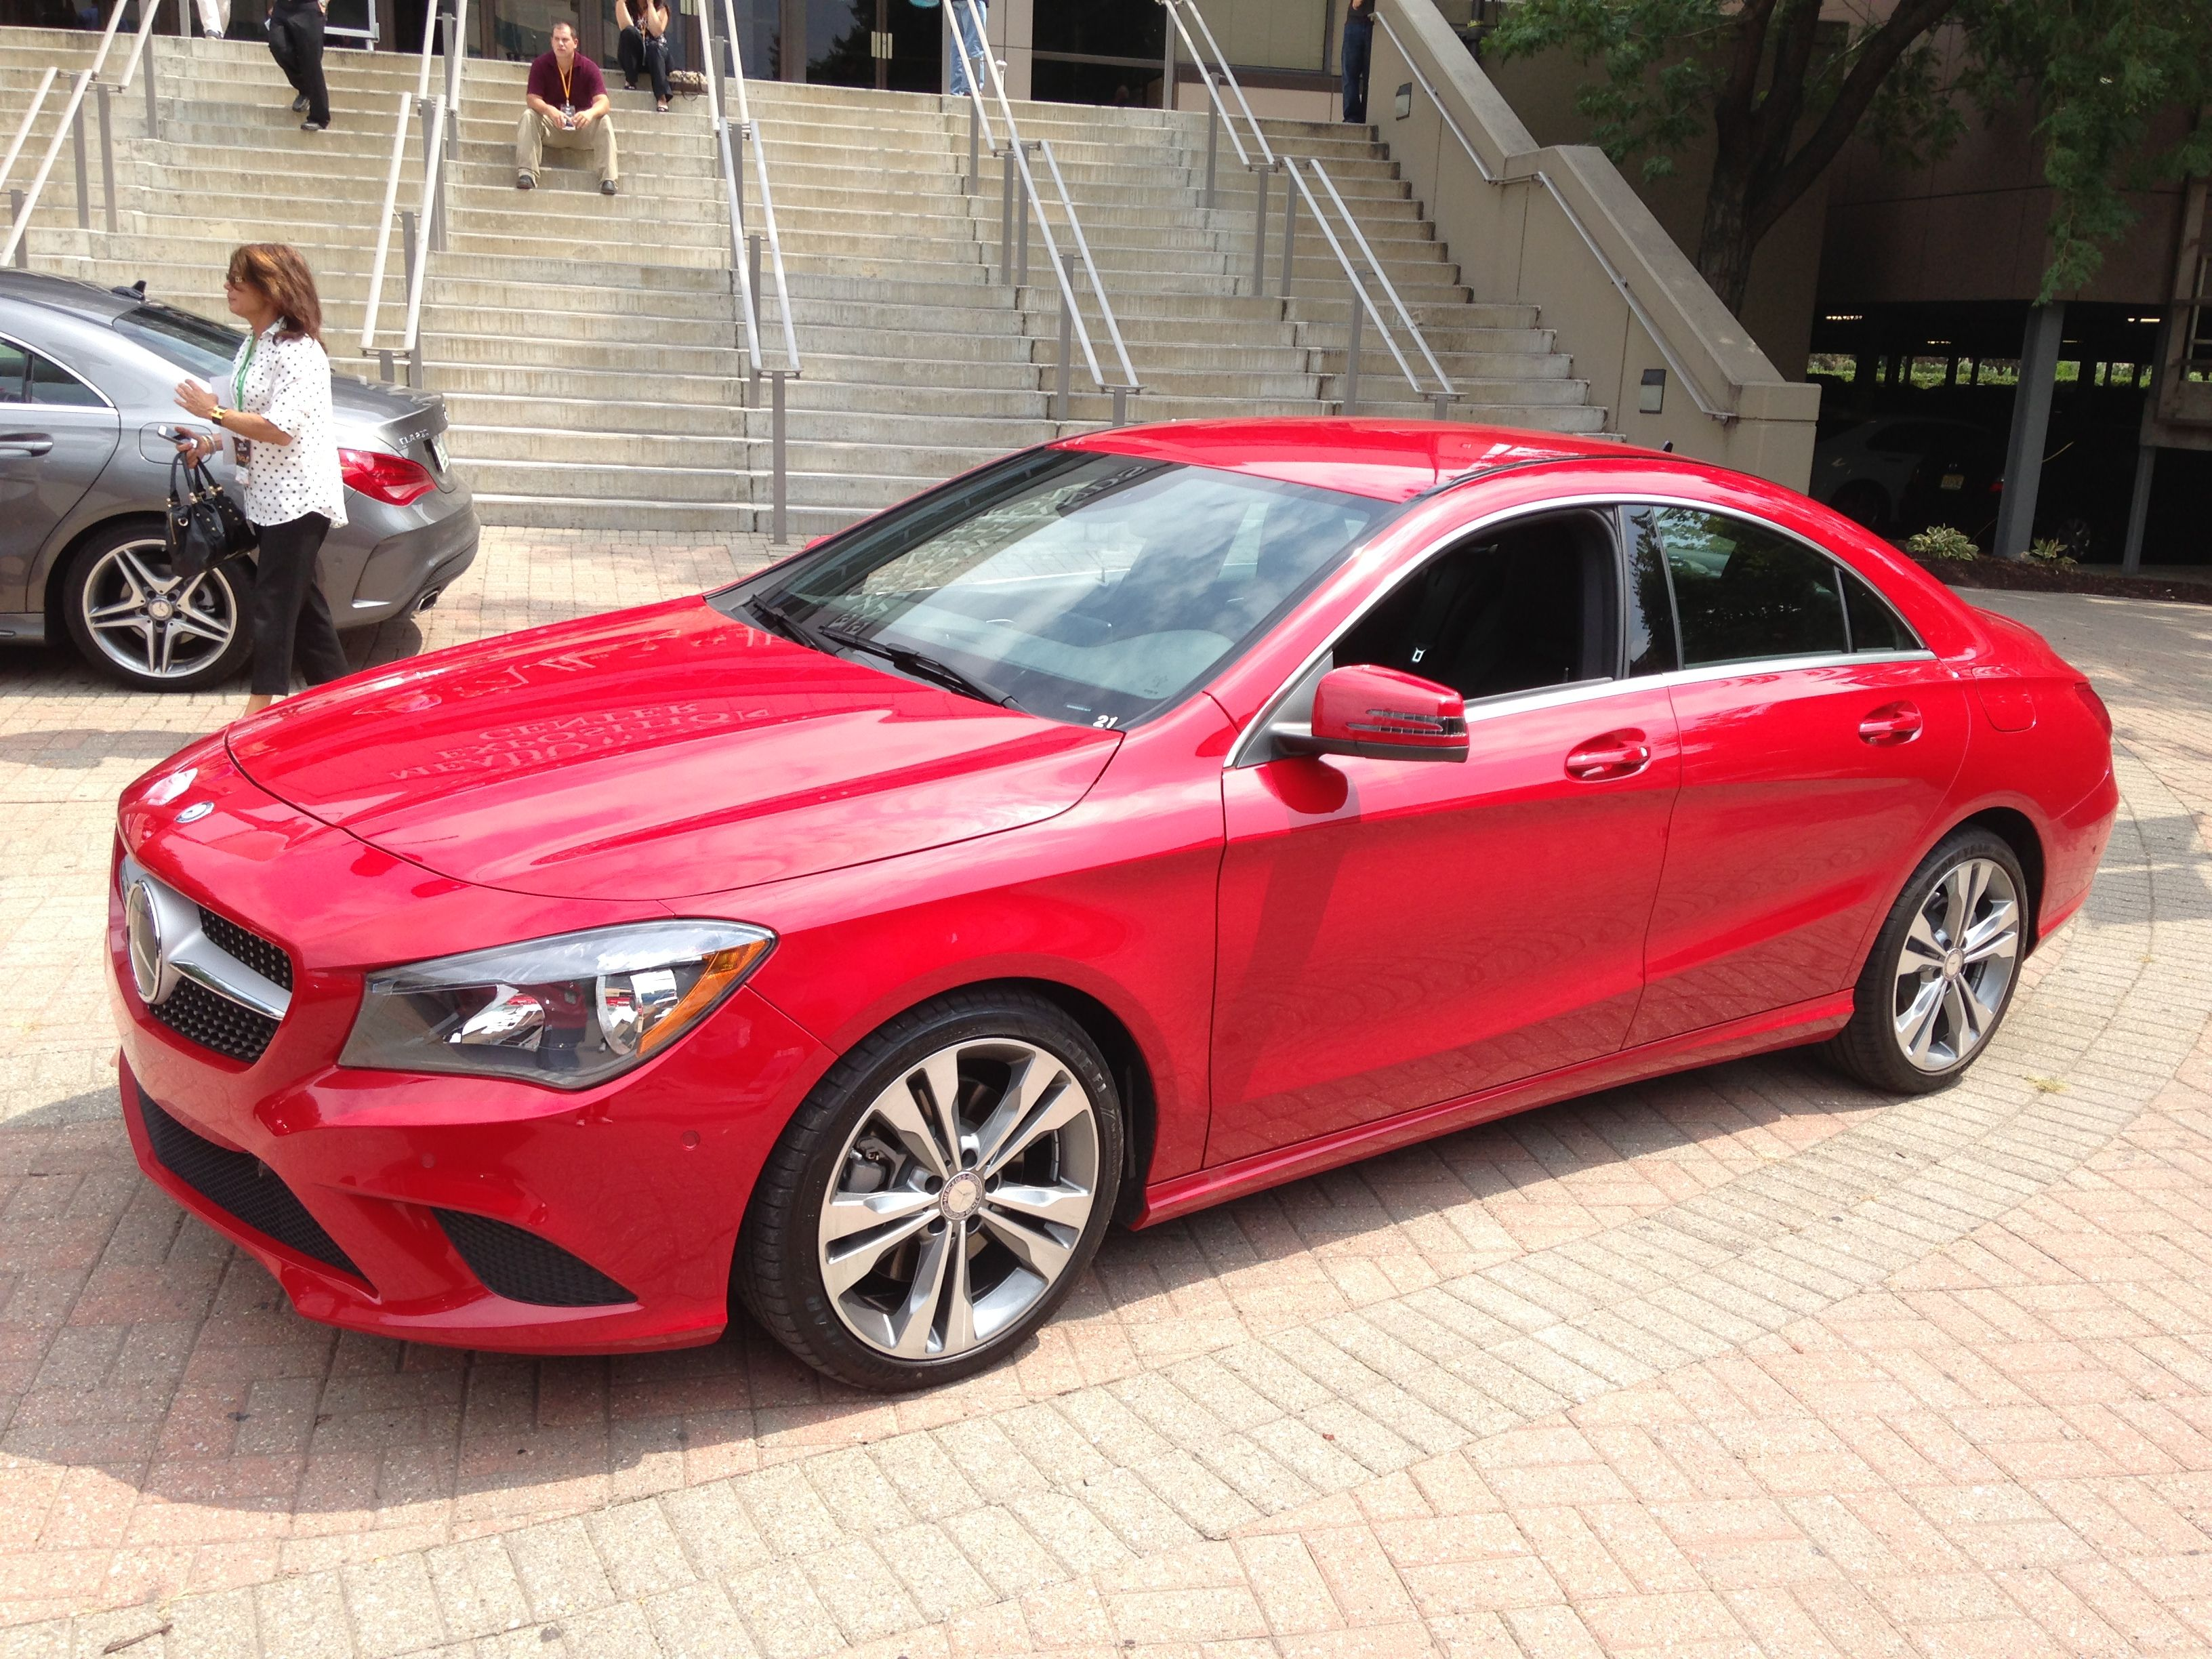 2014 mercedes benz cla 250 in jupiter red 2014 mercedes